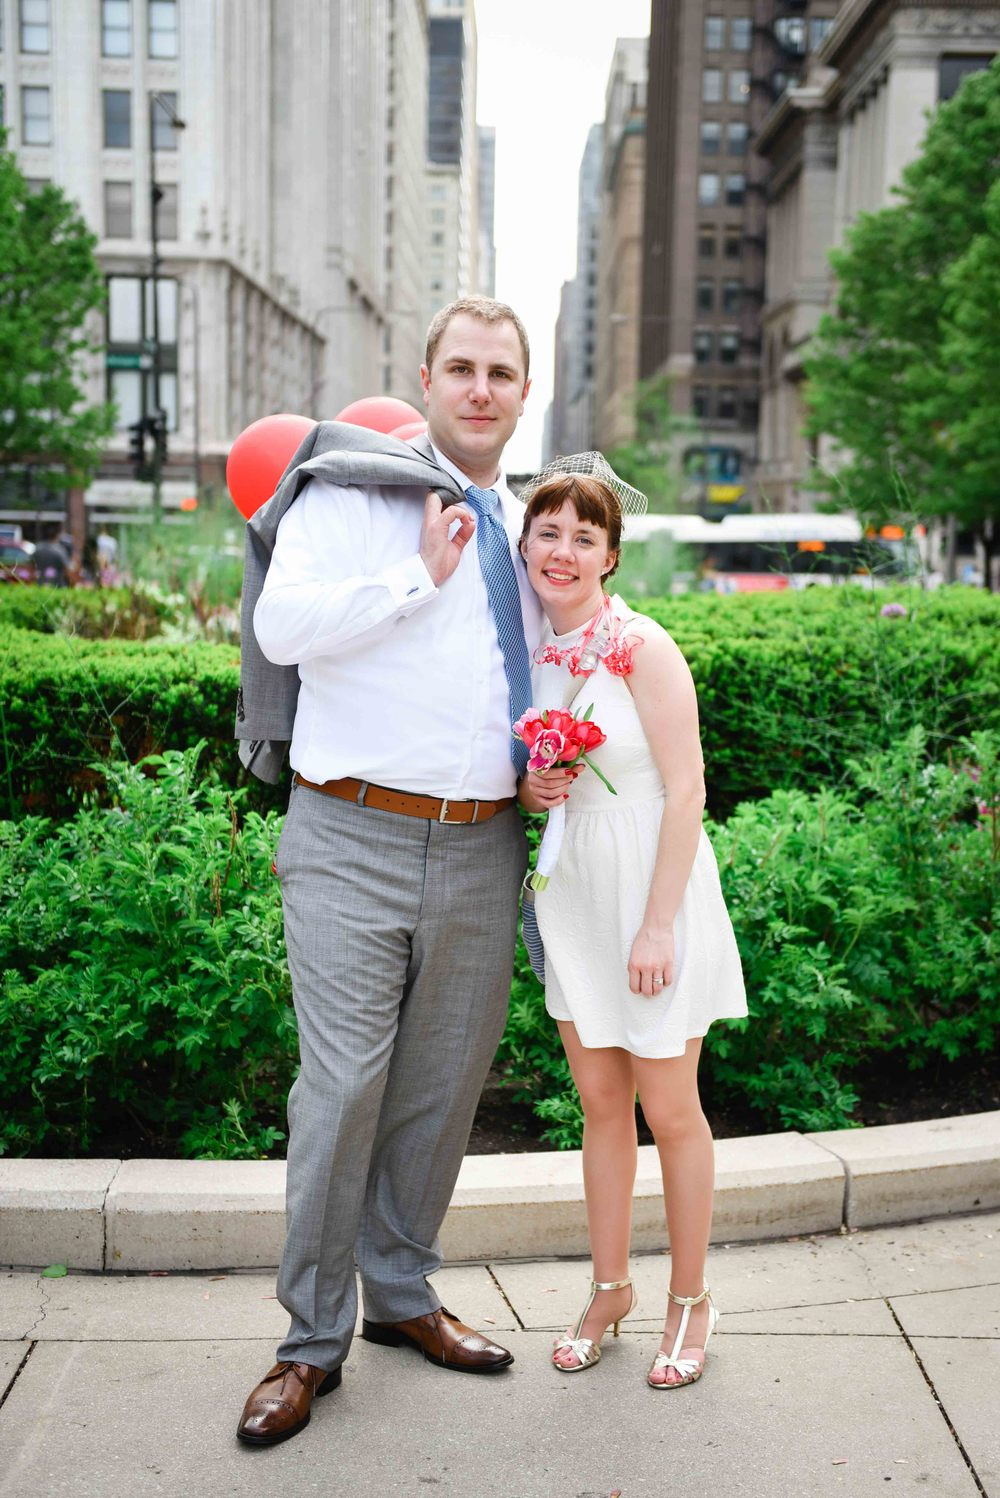 CHICAGO, IL - May 17, 2015: Chicago Wedding (photo by Adrienne Battistella, 2015. All Rights Reserved.)